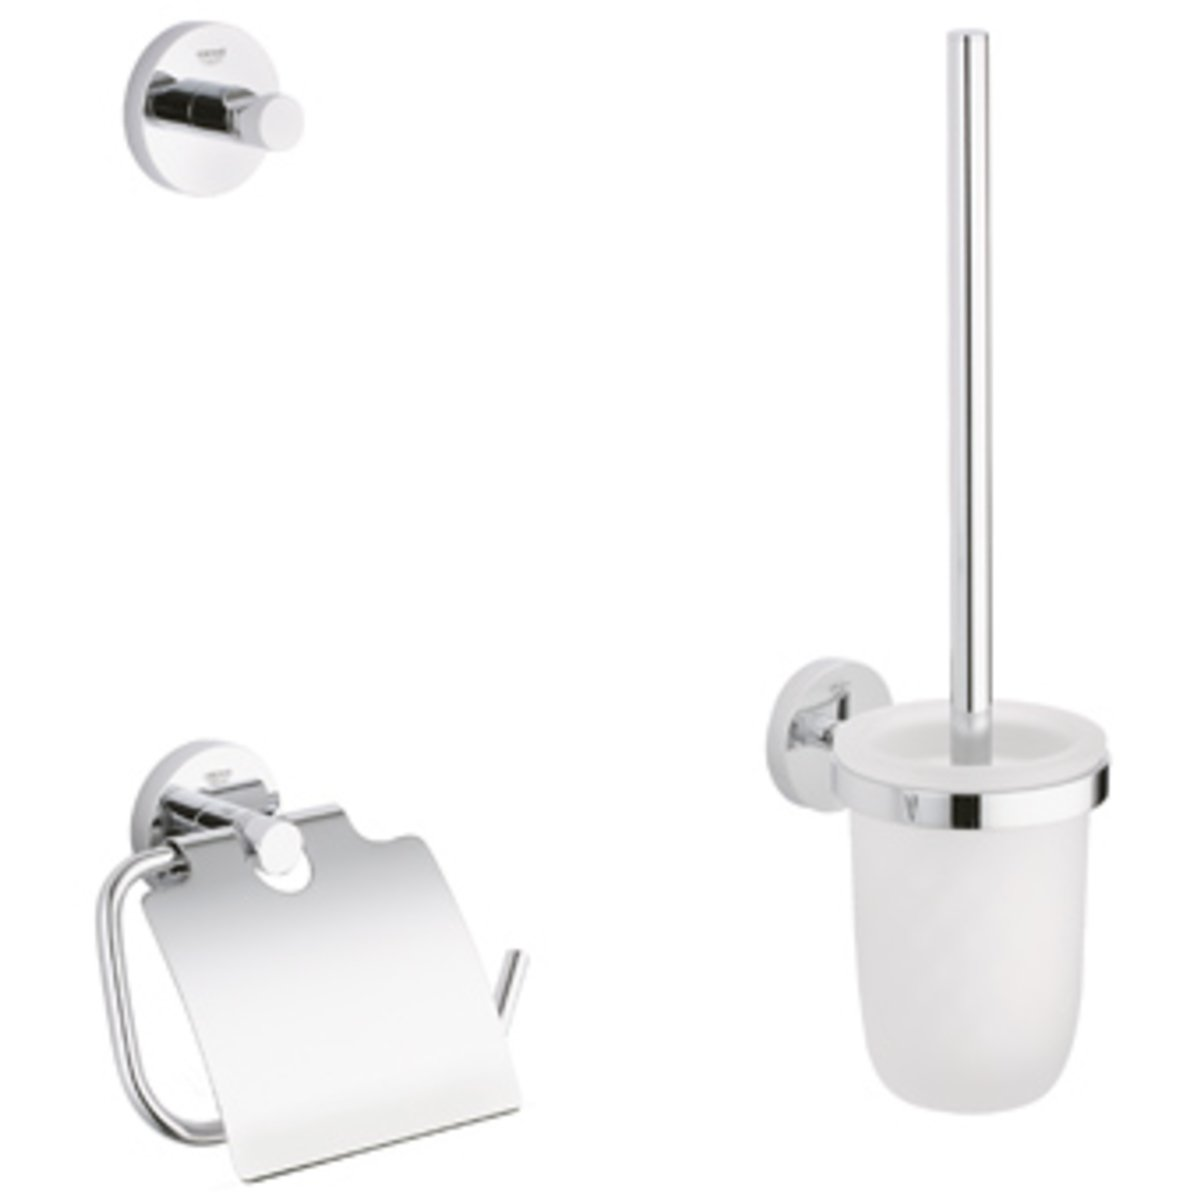 Grohe Badkamer Accessoires Set Grohe Essentials Accessoireset 3 In 1 Chroom 40407001